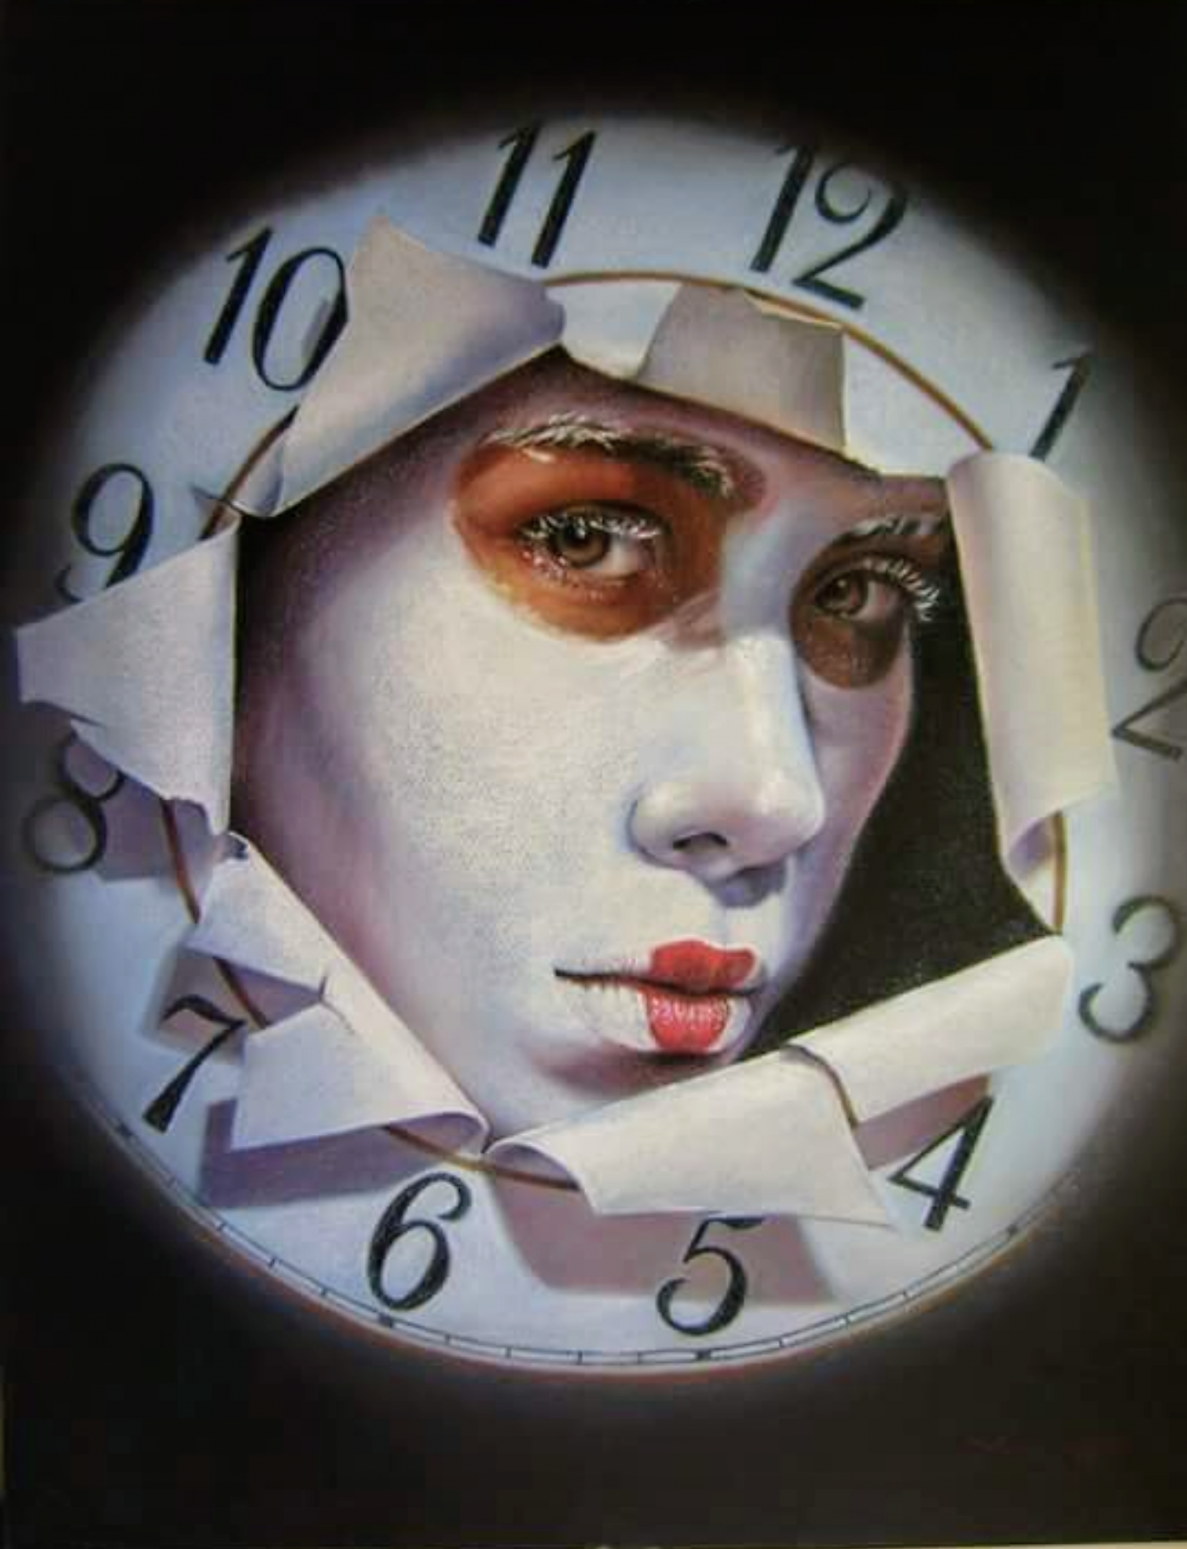 this is the time (2010) - María Xochitl Espinoza Flores